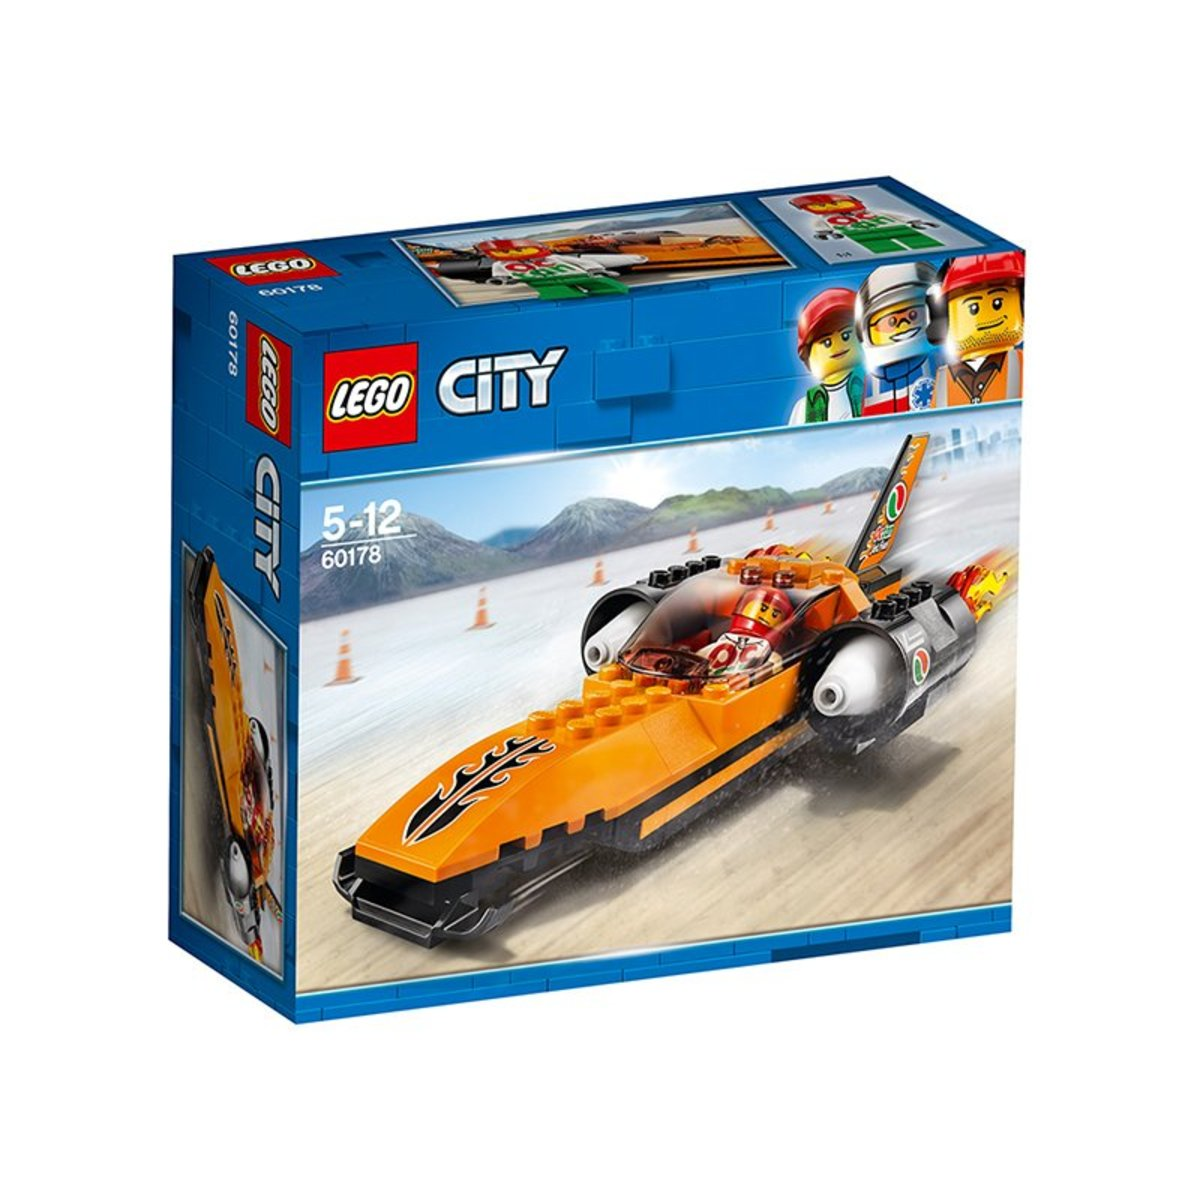 60178 CITY GREAT VEHICLES SPEED RECORD